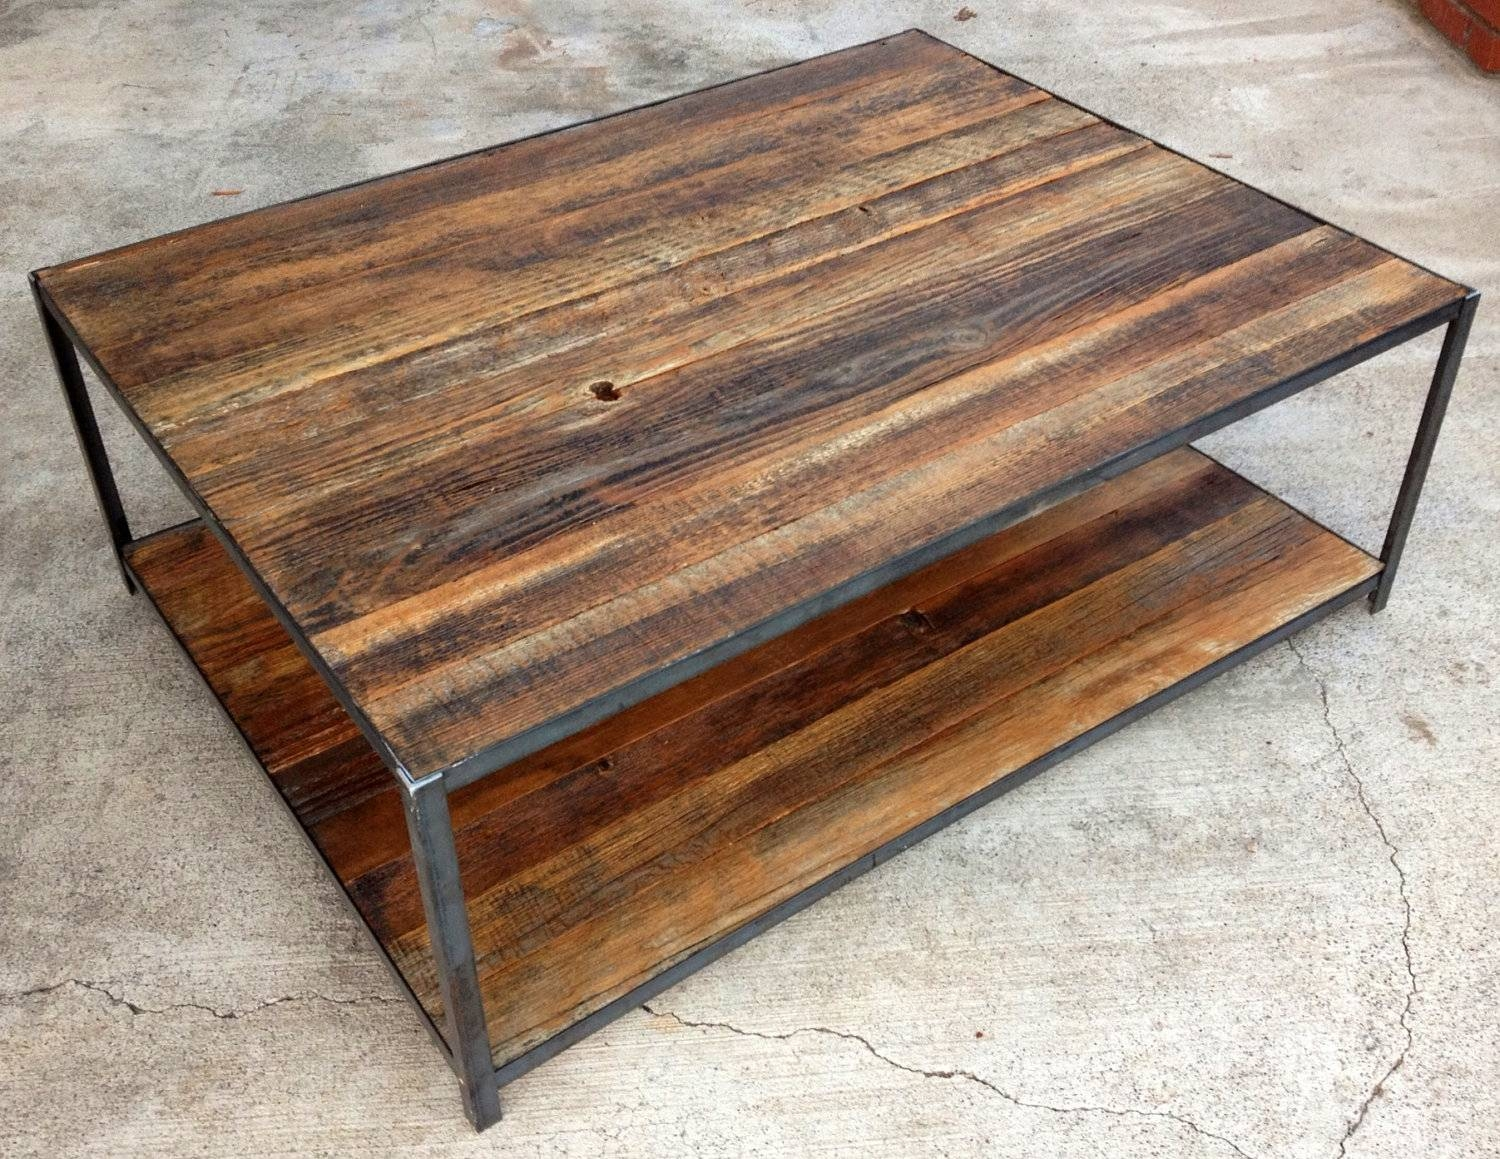 Popular Of Rustic Coffee And End Tables With Coffee Table Rustic throughout Rustic Barnwood Coffee Tables (Image 22 of 30)